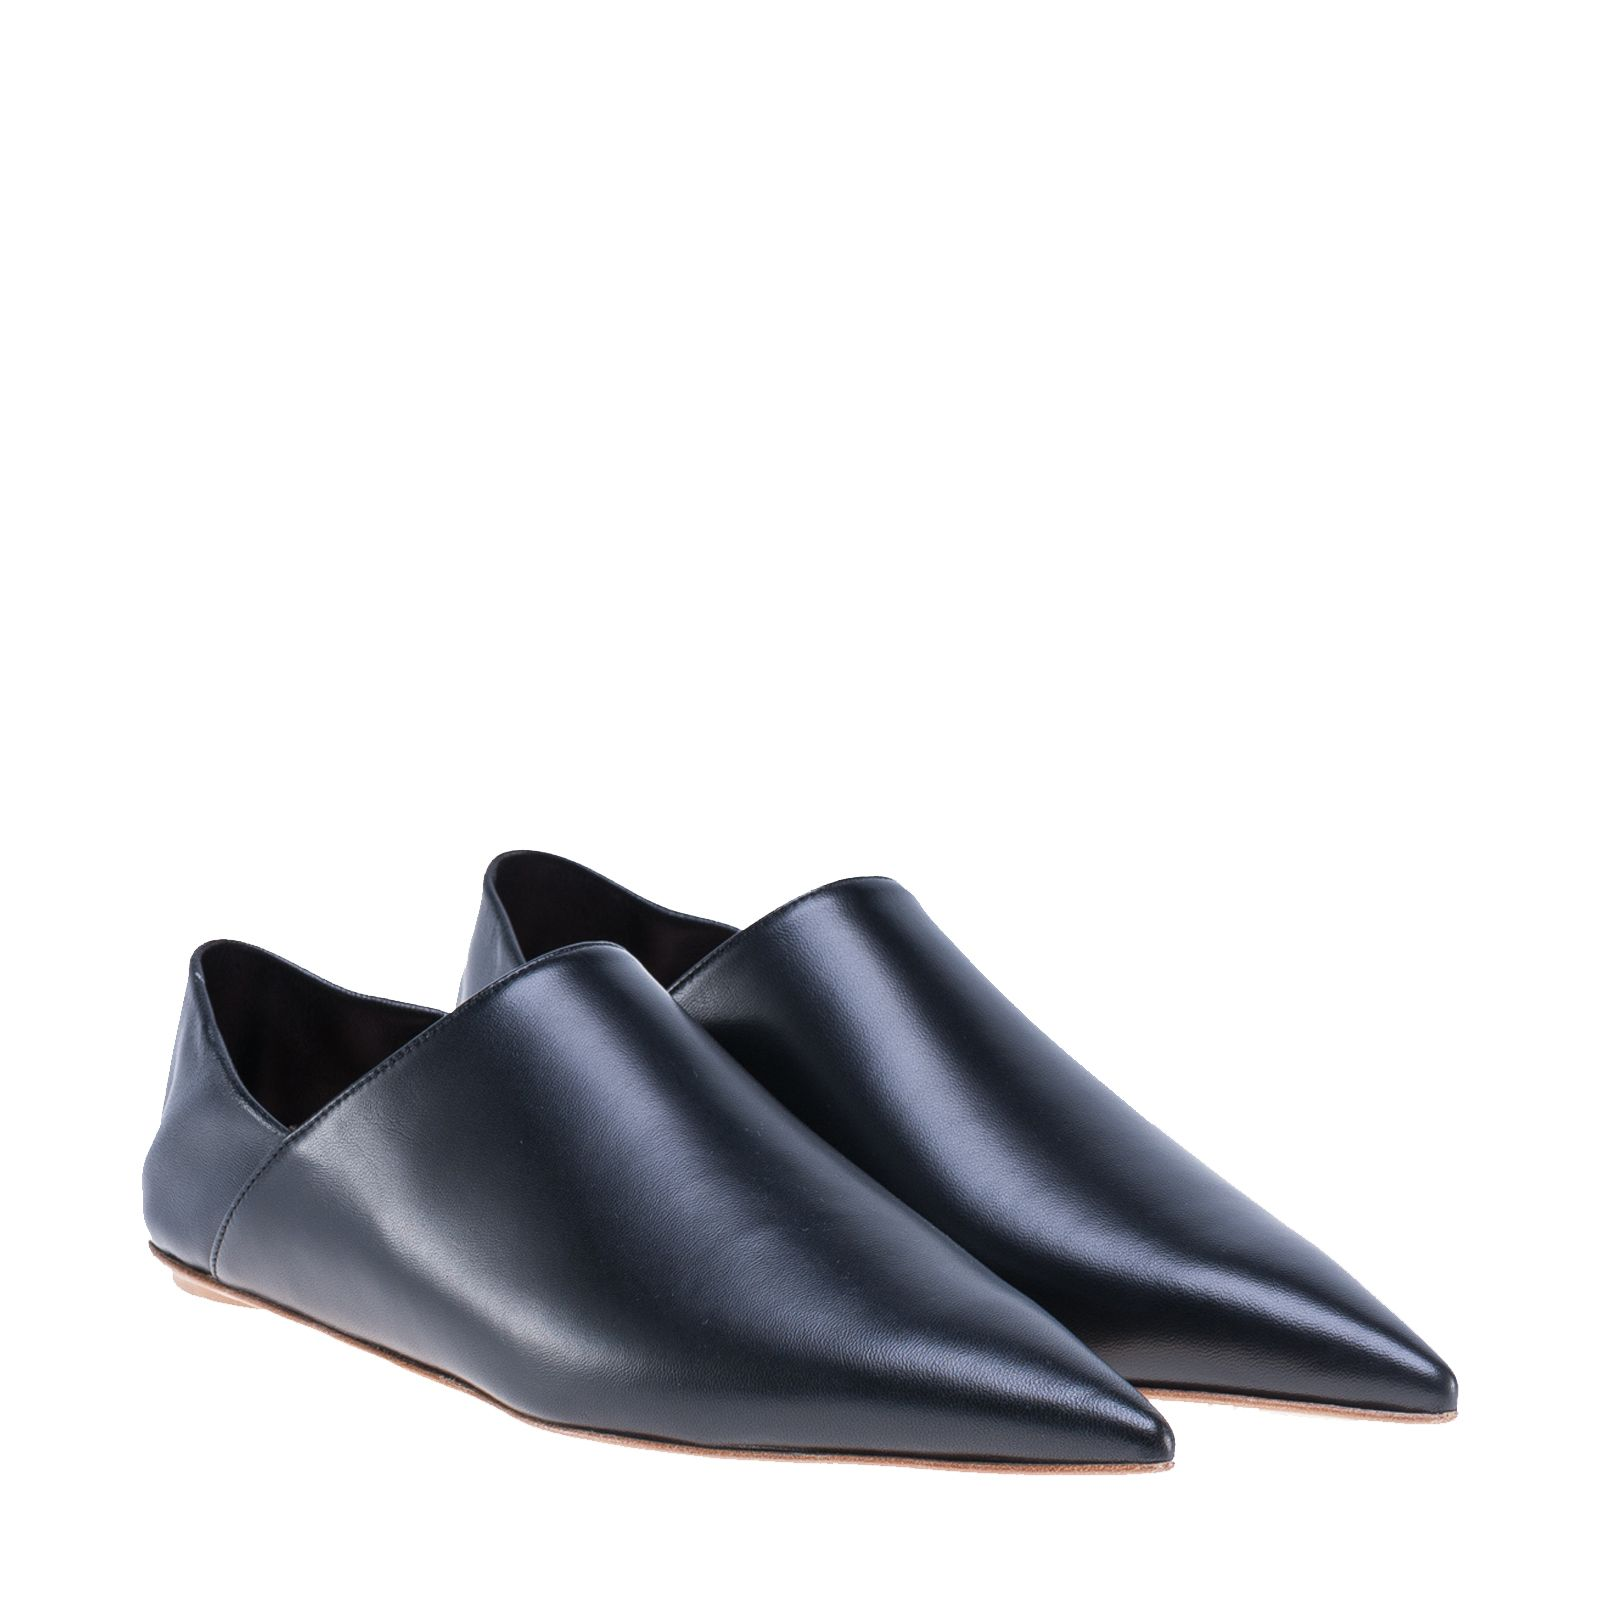 Marni Slipper Mules